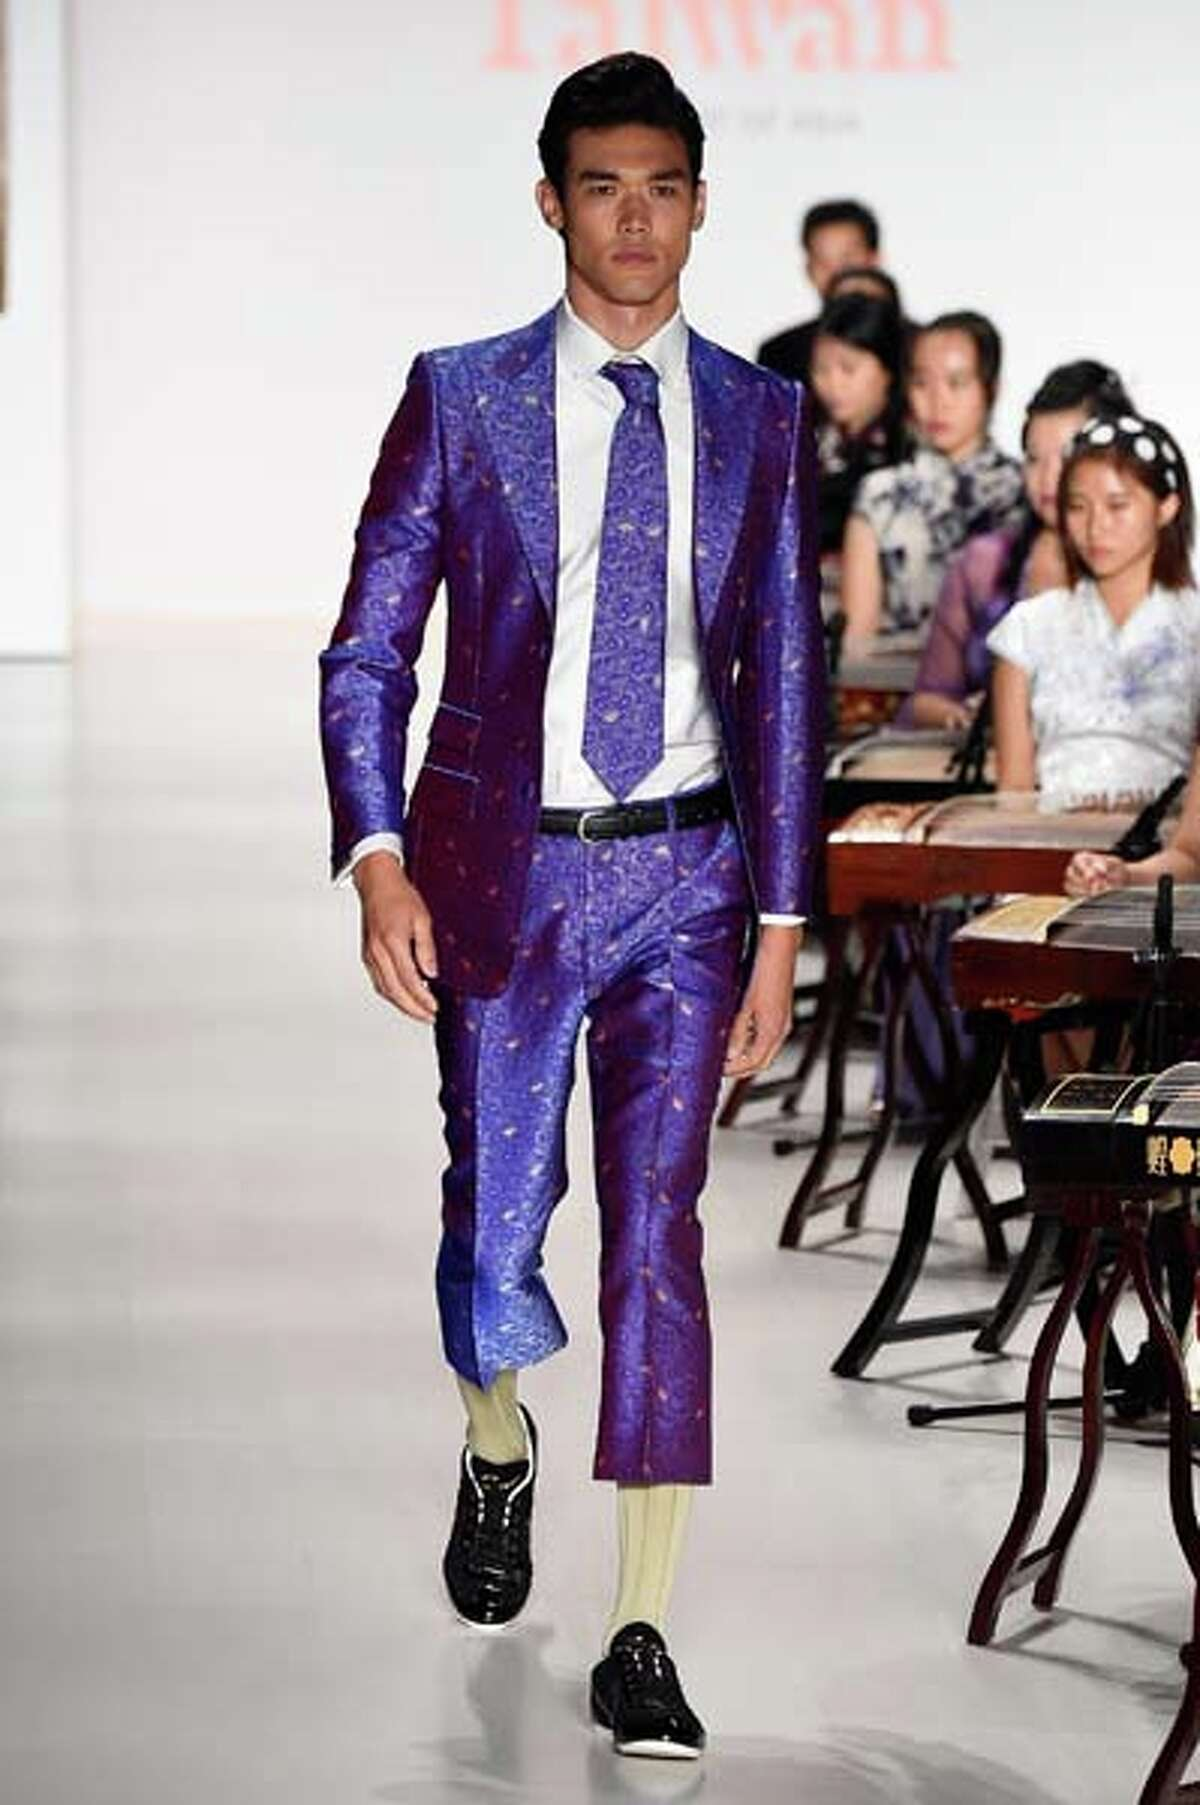 Purple glitter fabric, matching tie, comically short pants. If men became evil bridezillas, this is what they would make their frenemy bridesmaids wear.